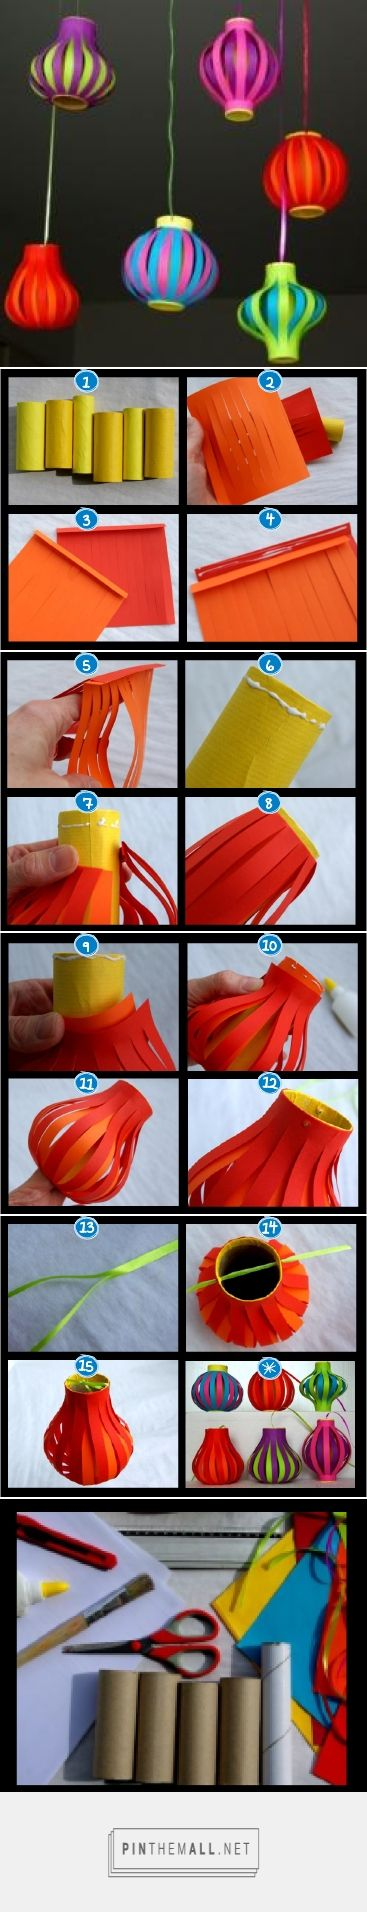 DIY - Un lampion en papier                                                                                                                                                      Plus